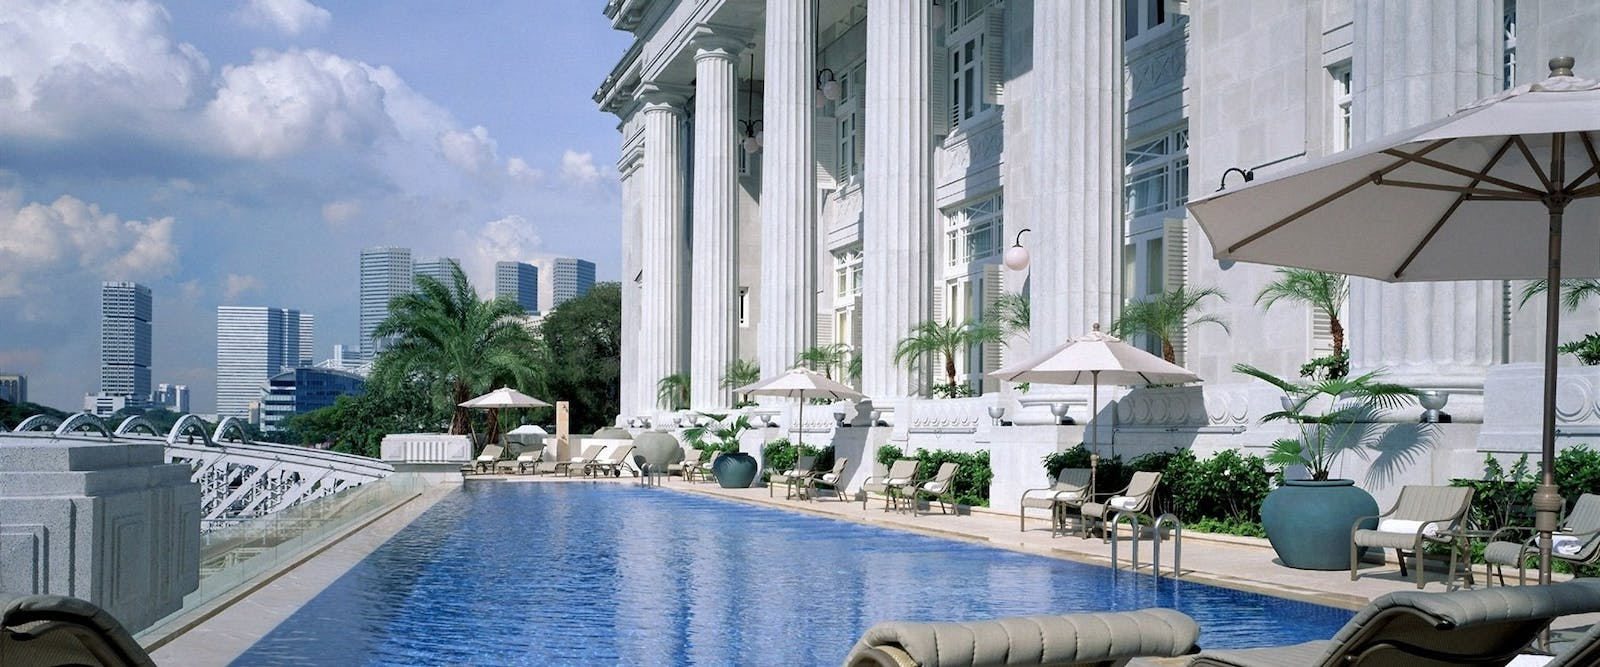 Infinity pool at The Fullerton Singapore